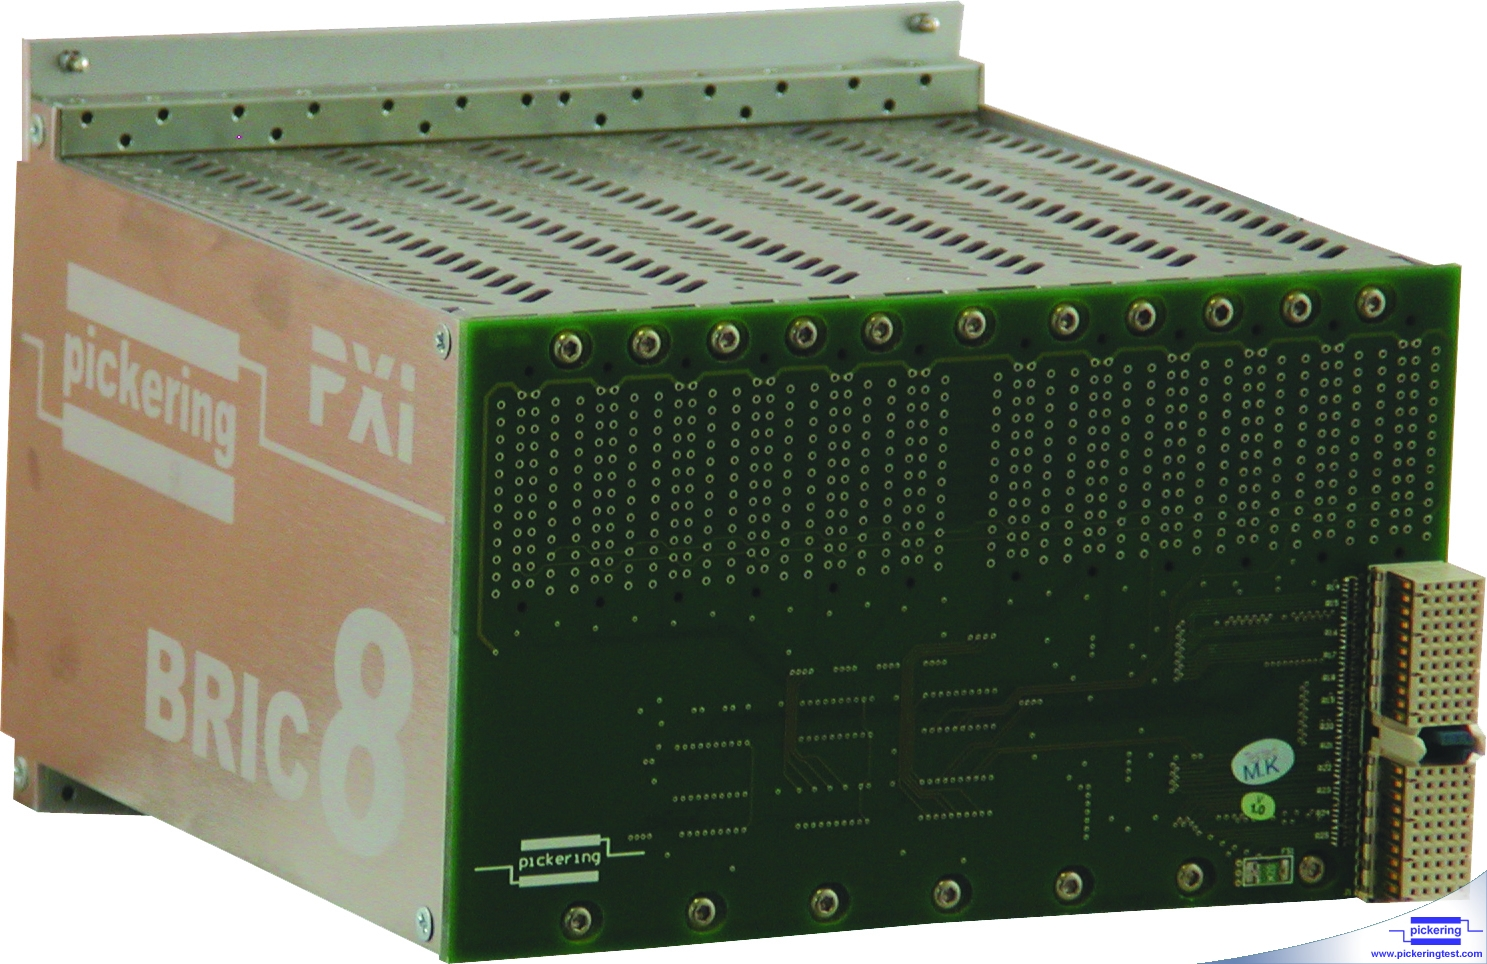 Rear view of a BRIC module, the connector on the right is the connector that plugs into the PXI backplane